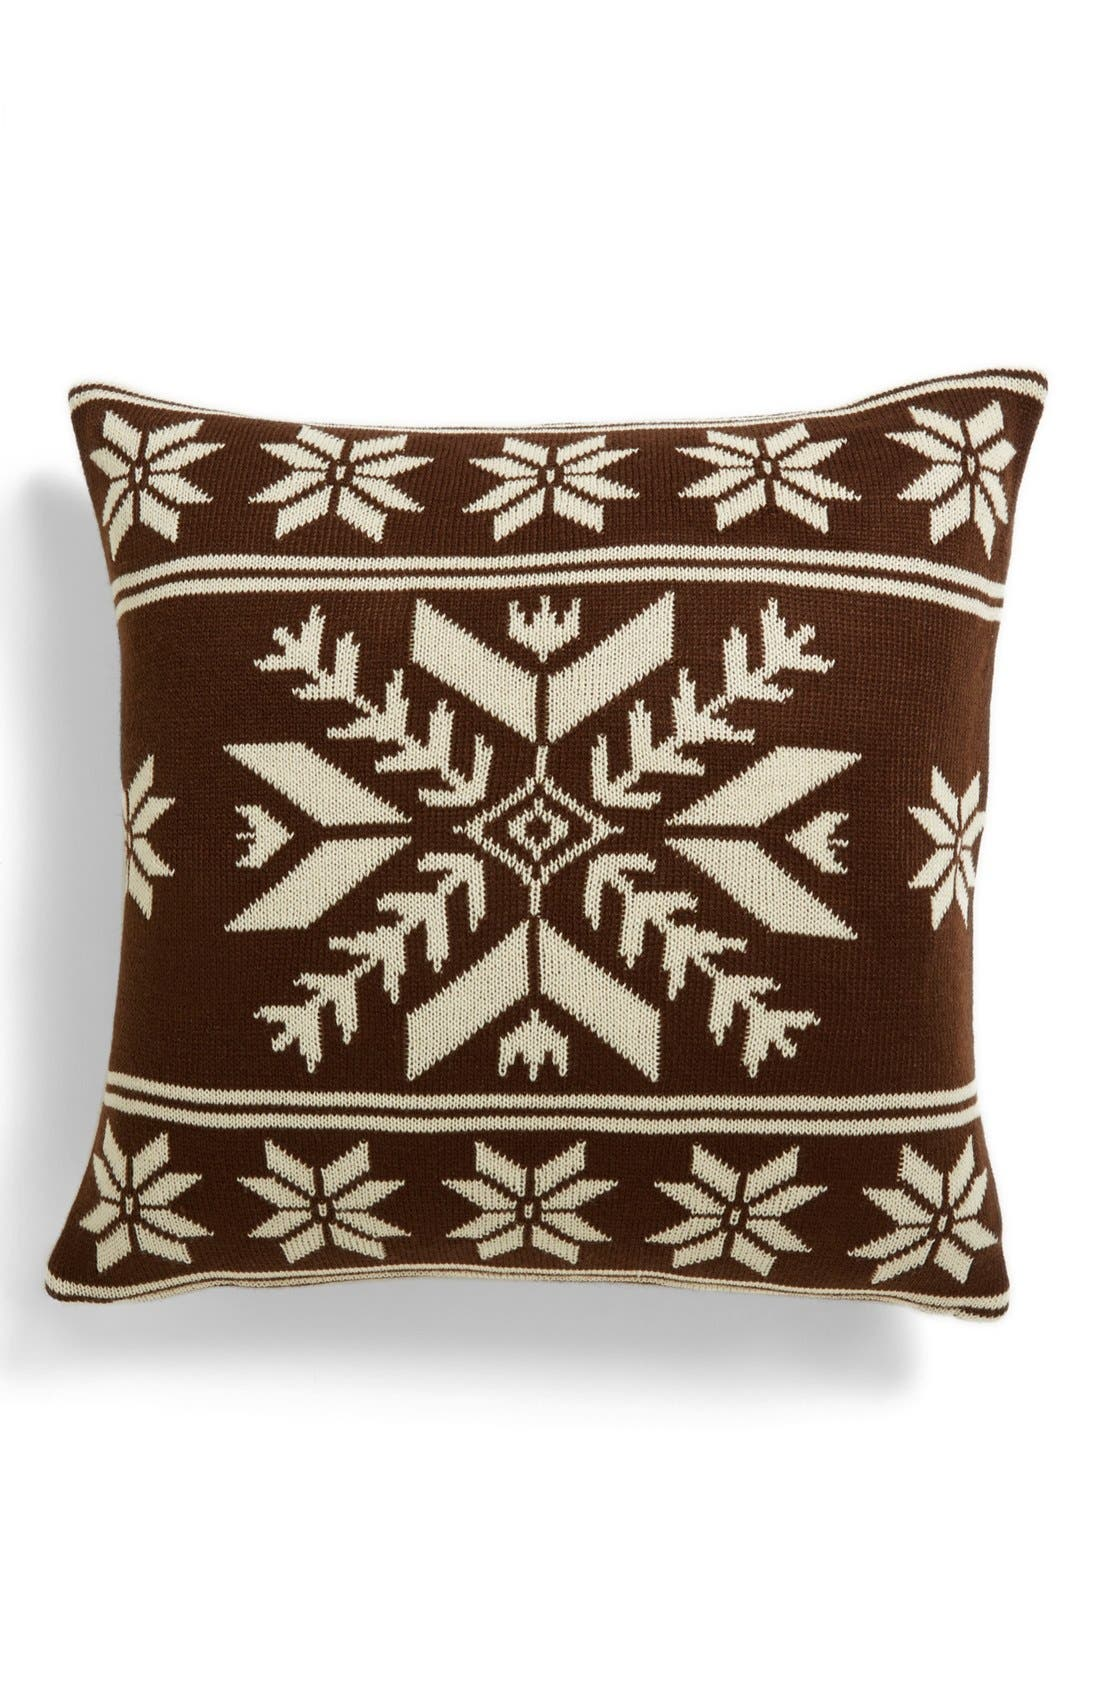 Alternate Image 1 Selected - Kennebunk Home 'Snowflake' Pillow